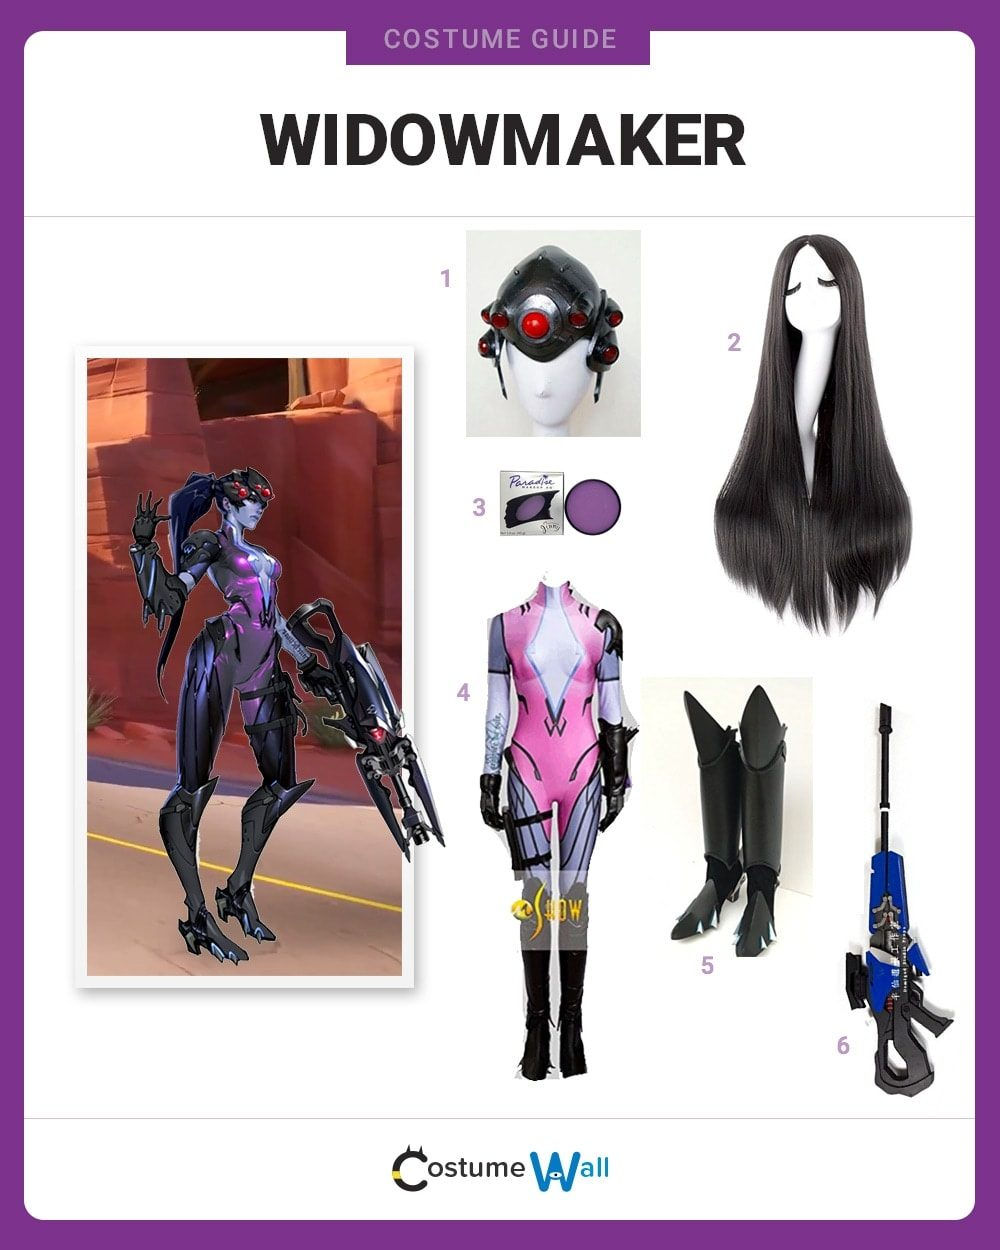 Widowmaker Costume Guide